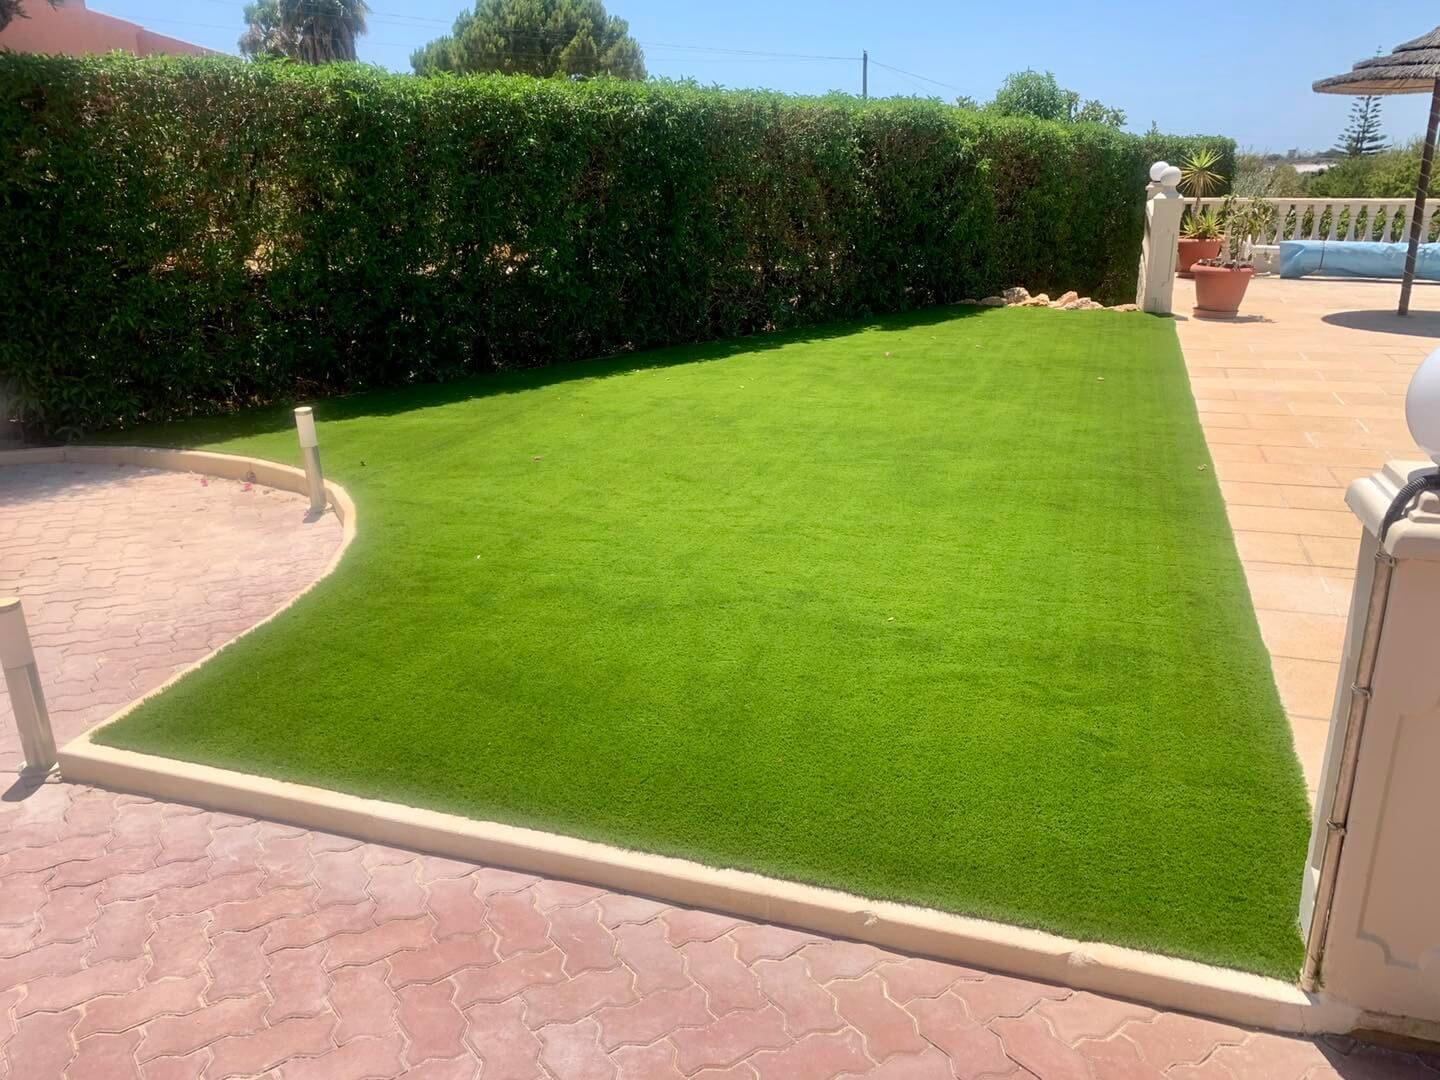 grasshopper-greens-lawns-2020 (36)